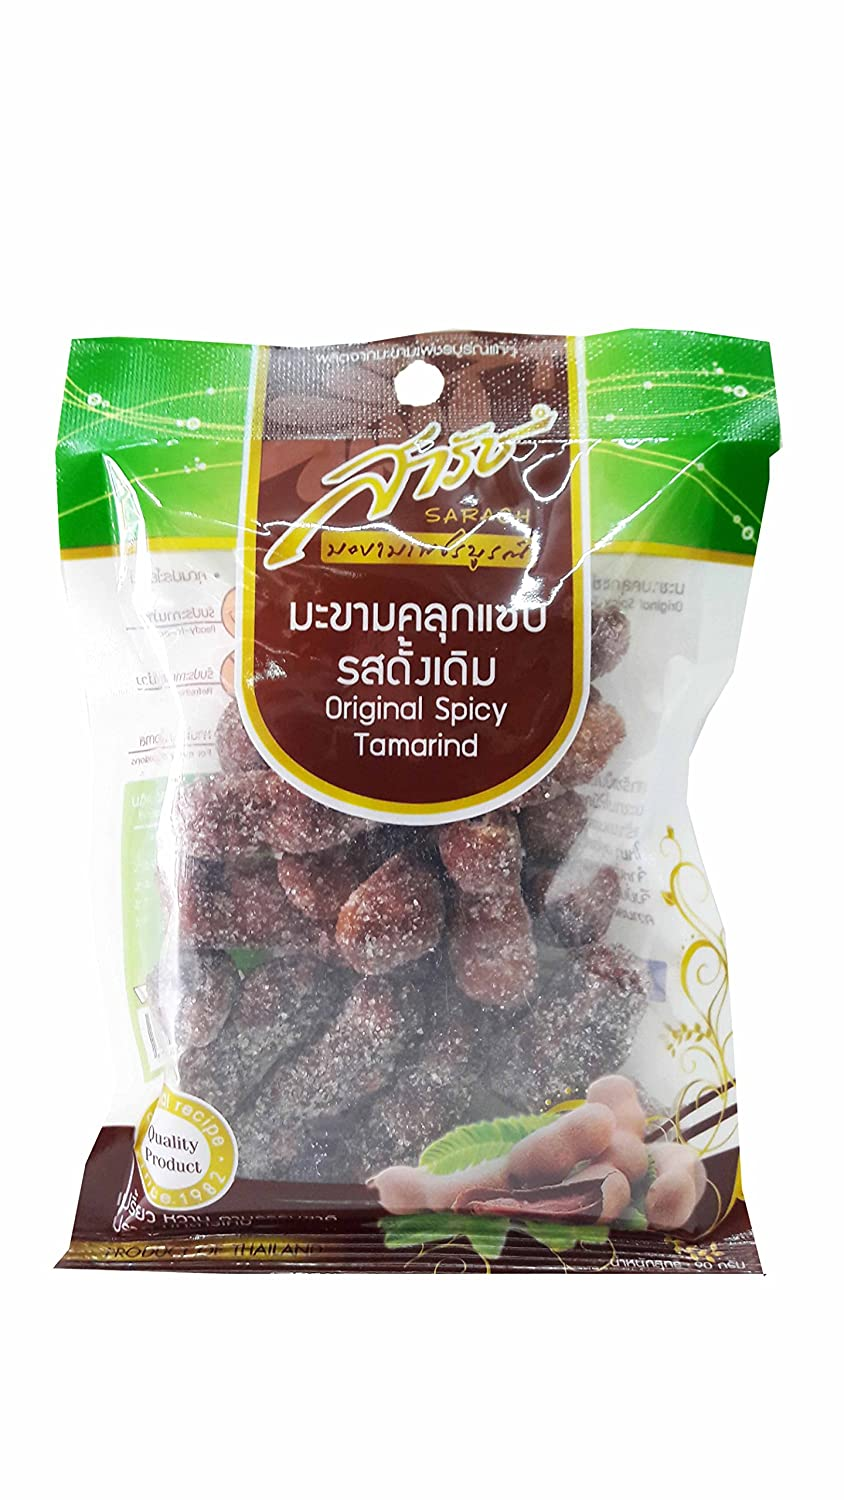 4 Packs of Original Spicy Tamarind, Selected Premium Delicious Snack By Sarach From Phetchabun Province, Thailand (90 G./pack)